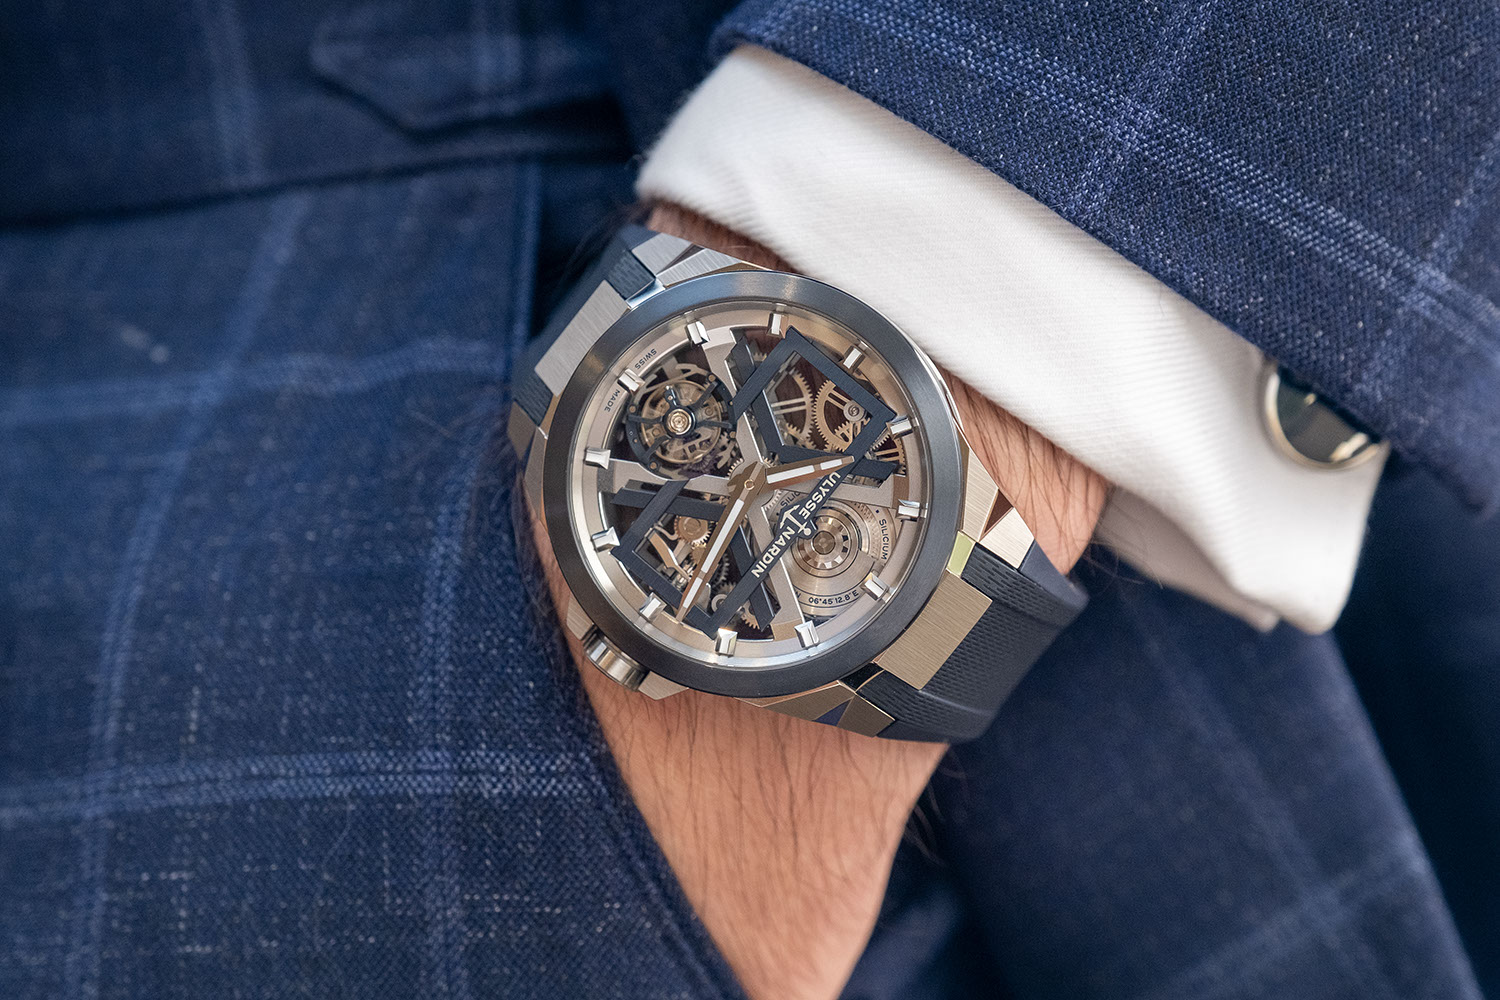 On the wrist, the Ulysse Nardin Blue Blast (ref. T-1723-400/03) on a structured rubber strap (©Revolution)